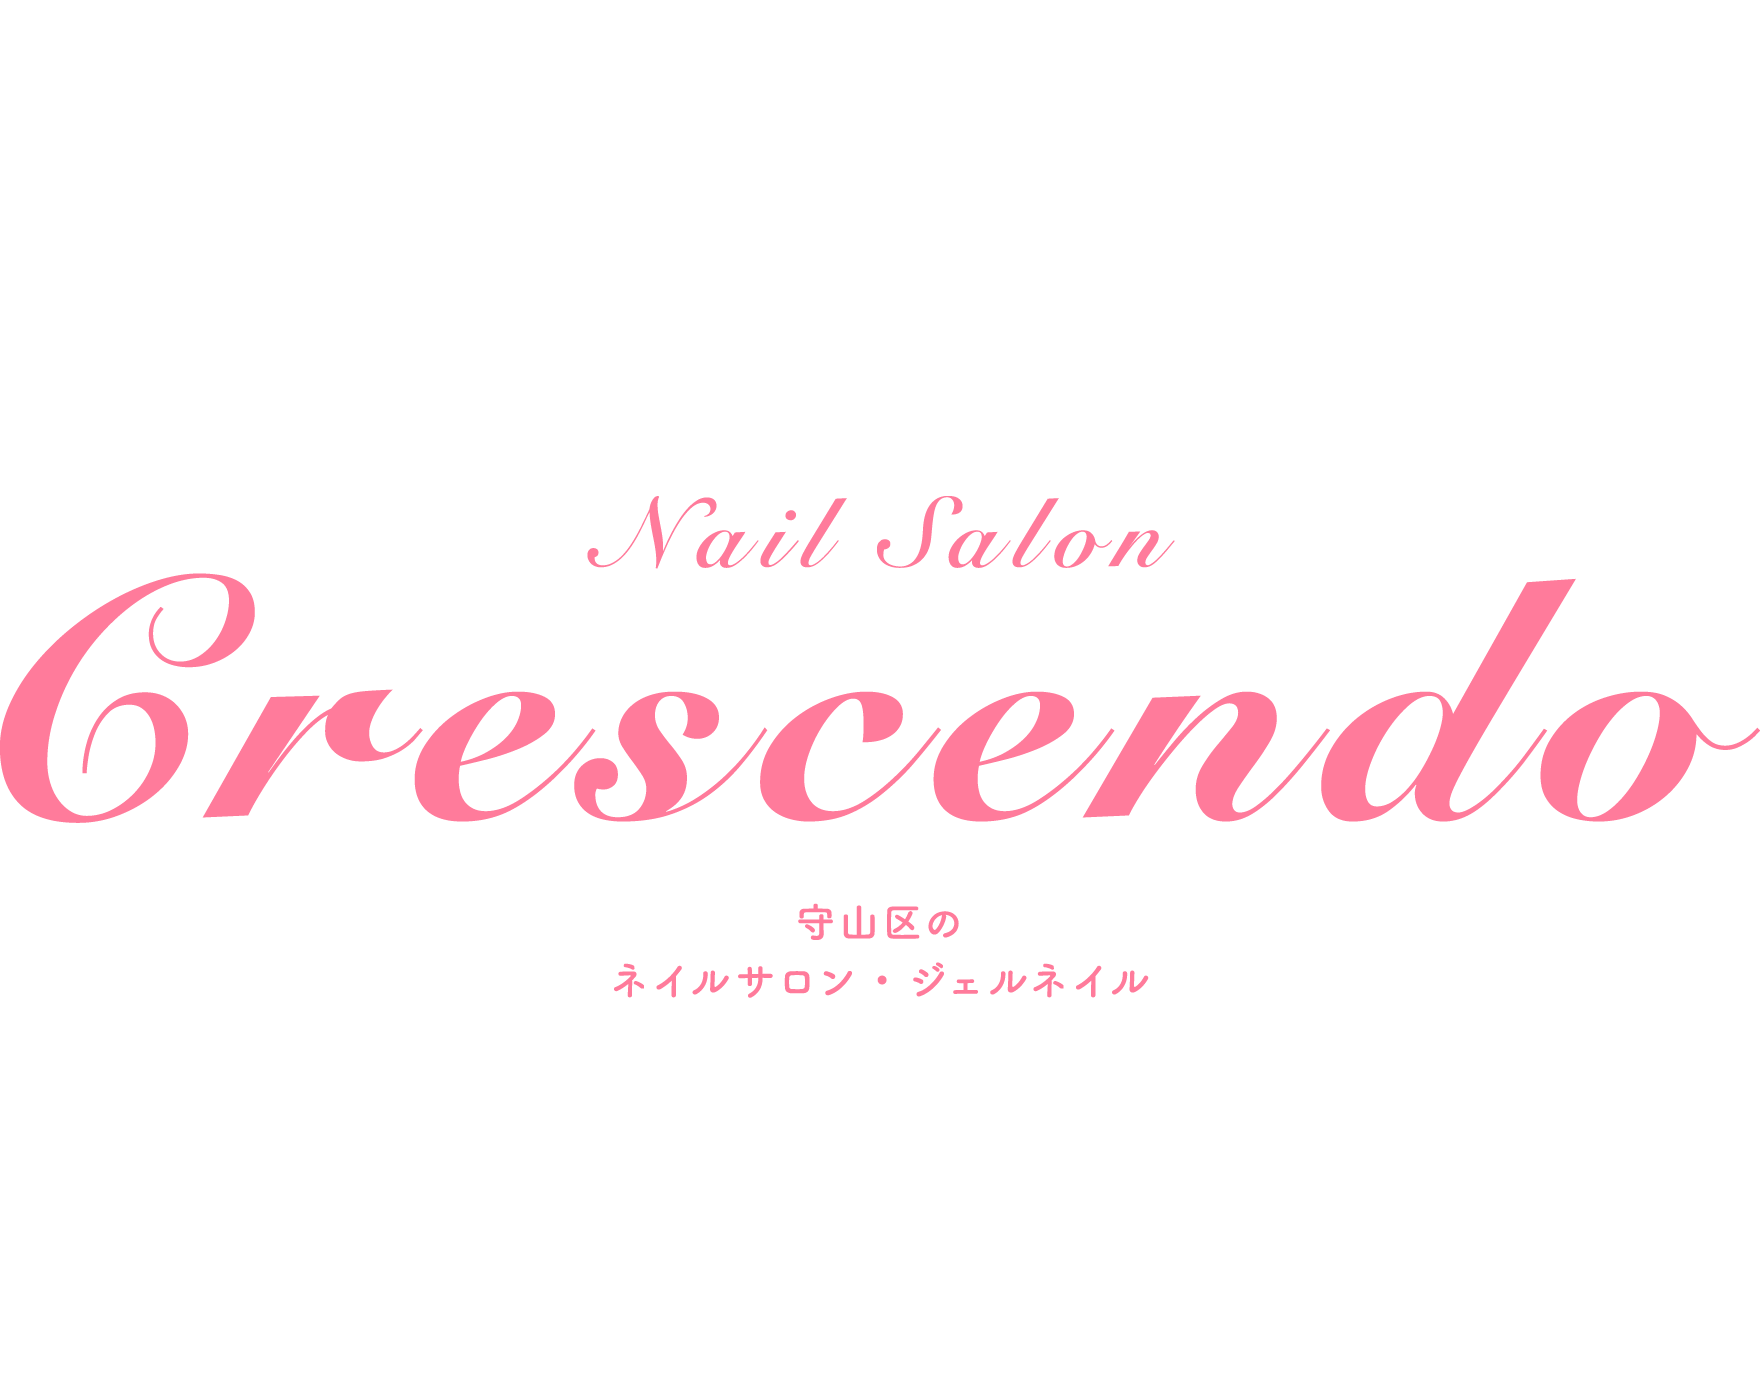 Nail Salon Crescendo